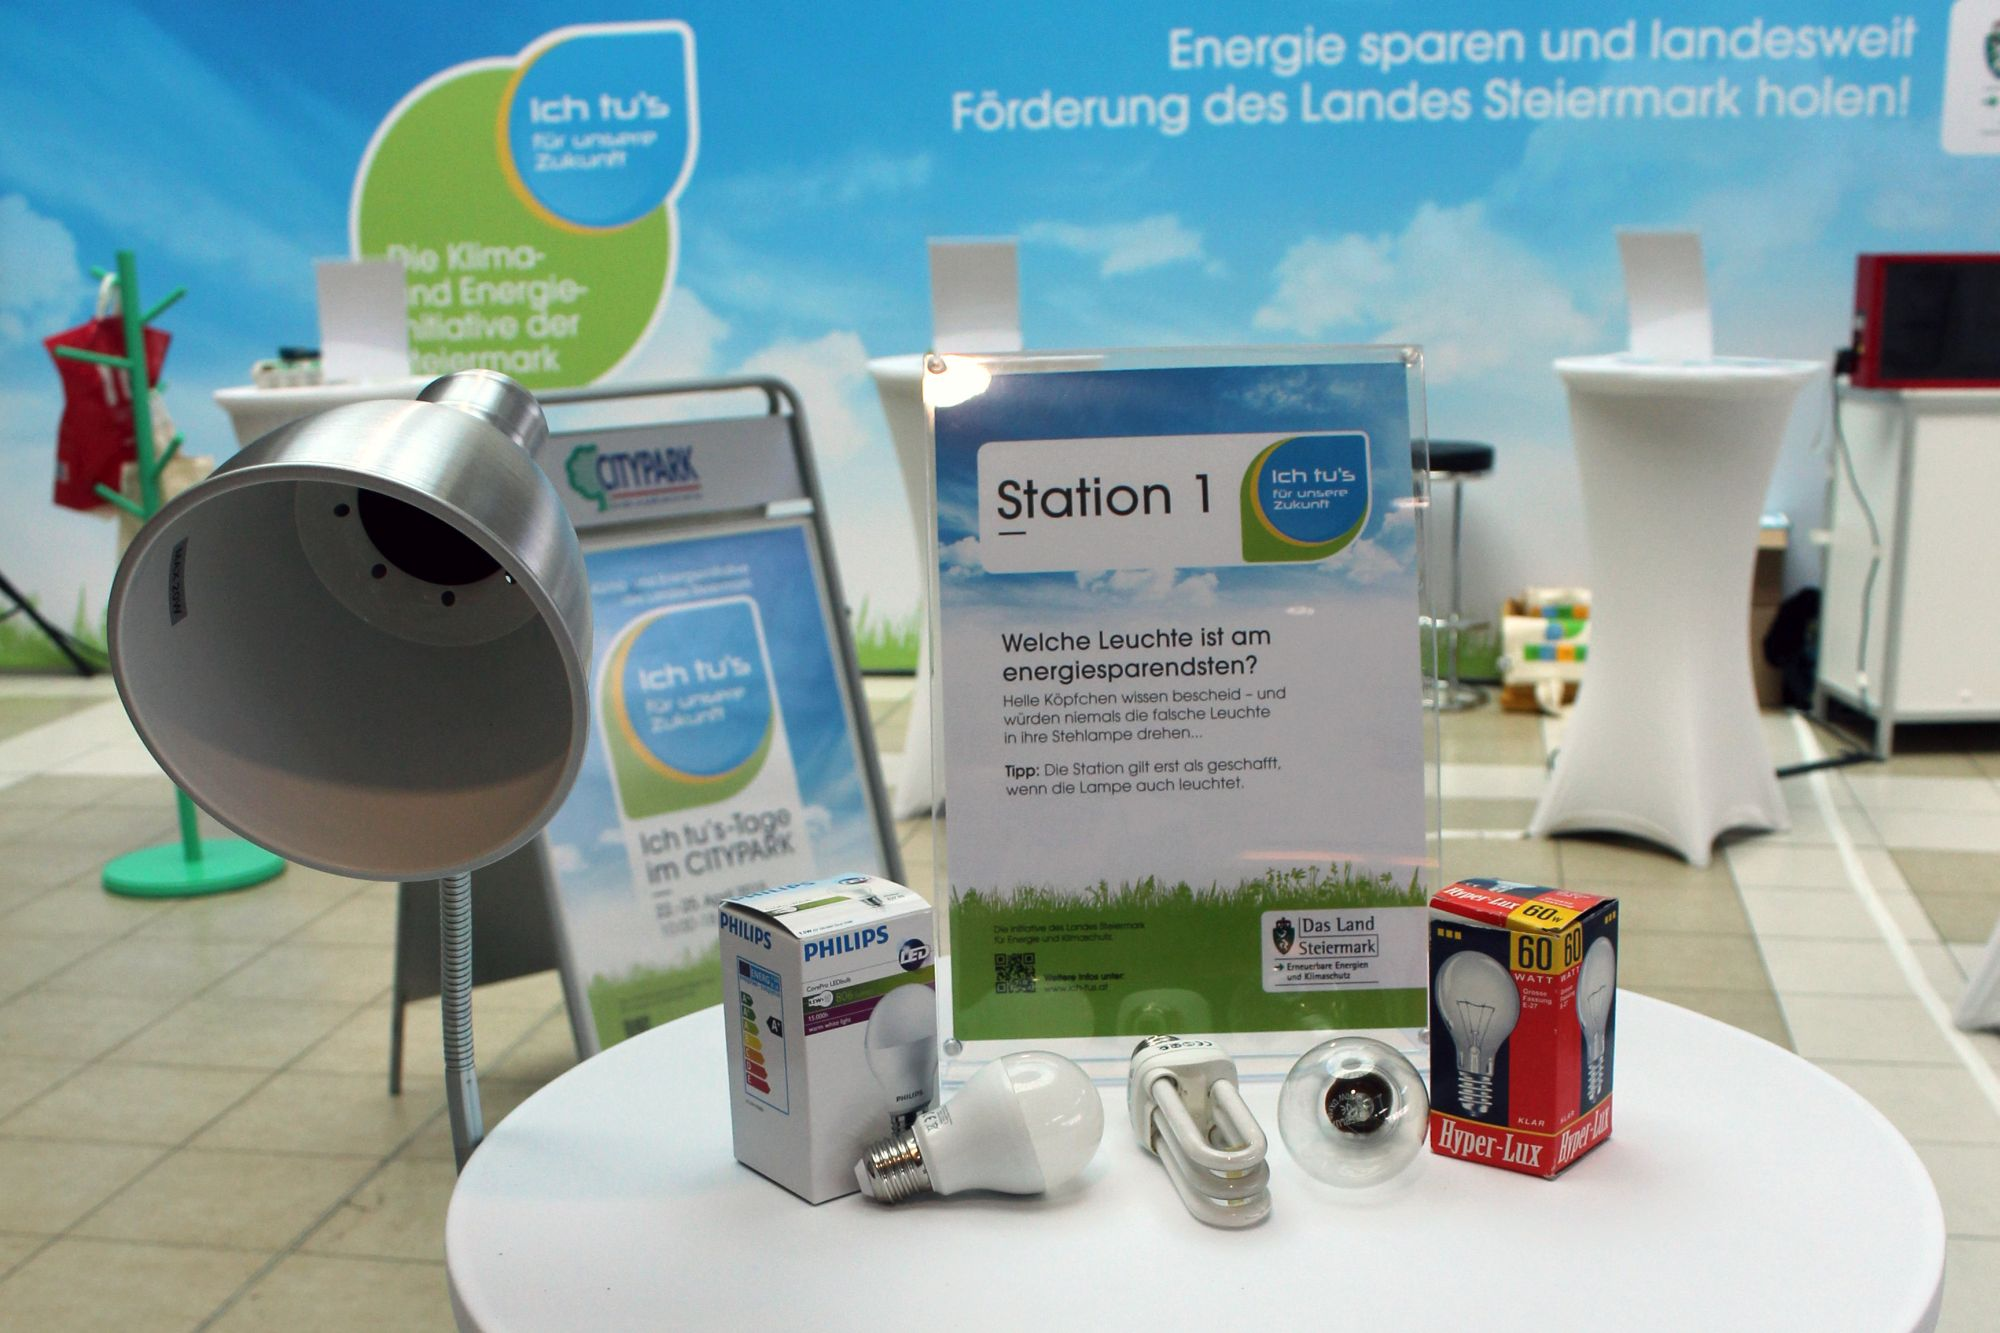 Station im Energiesparcours